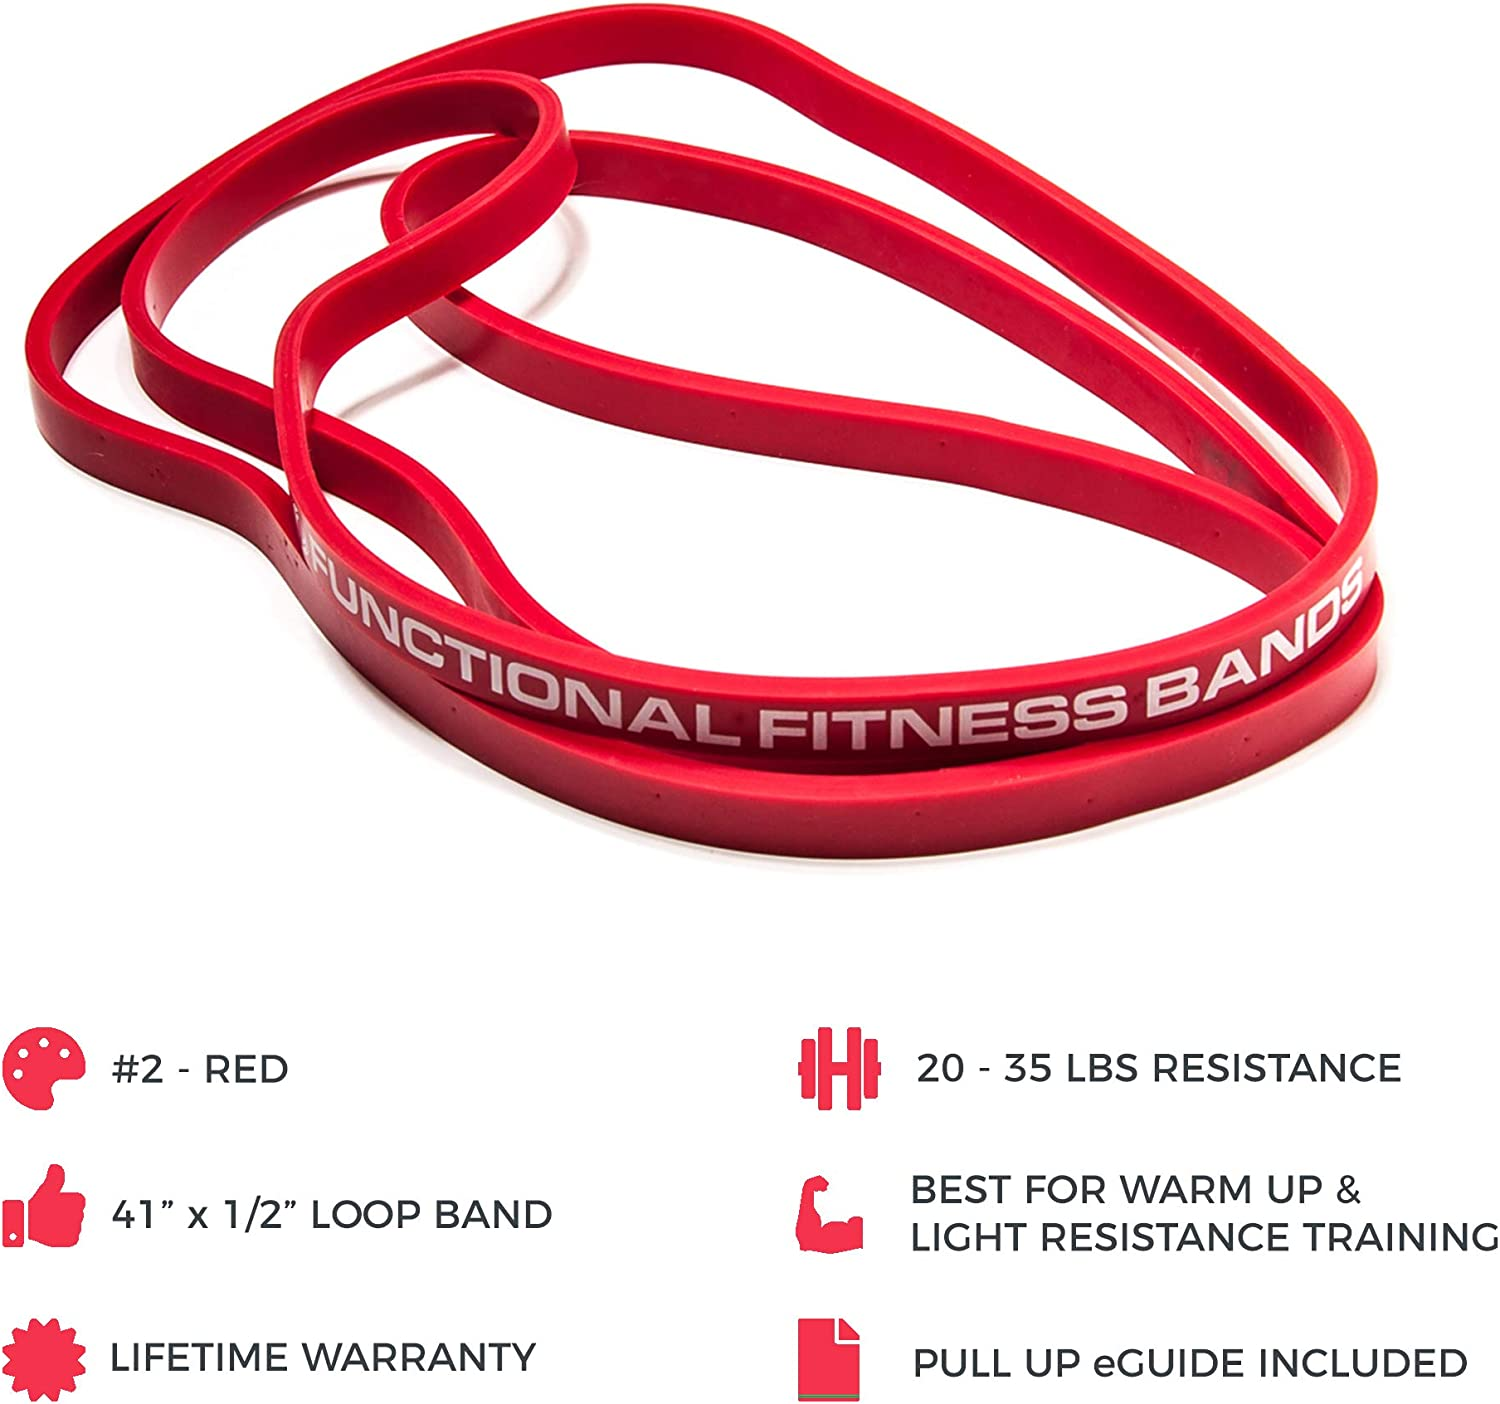 rehab assisted pull-ups powerlifting physical therapy ring dips gym muscle-Ups chin-ups 8 sizes, available in 15, 35, 50, 80, 120, 150, 170, and 200 pound options, 6-Month Warranty Functional Fitness 41 inch Continuous Loop Crossfit Pull up Band -